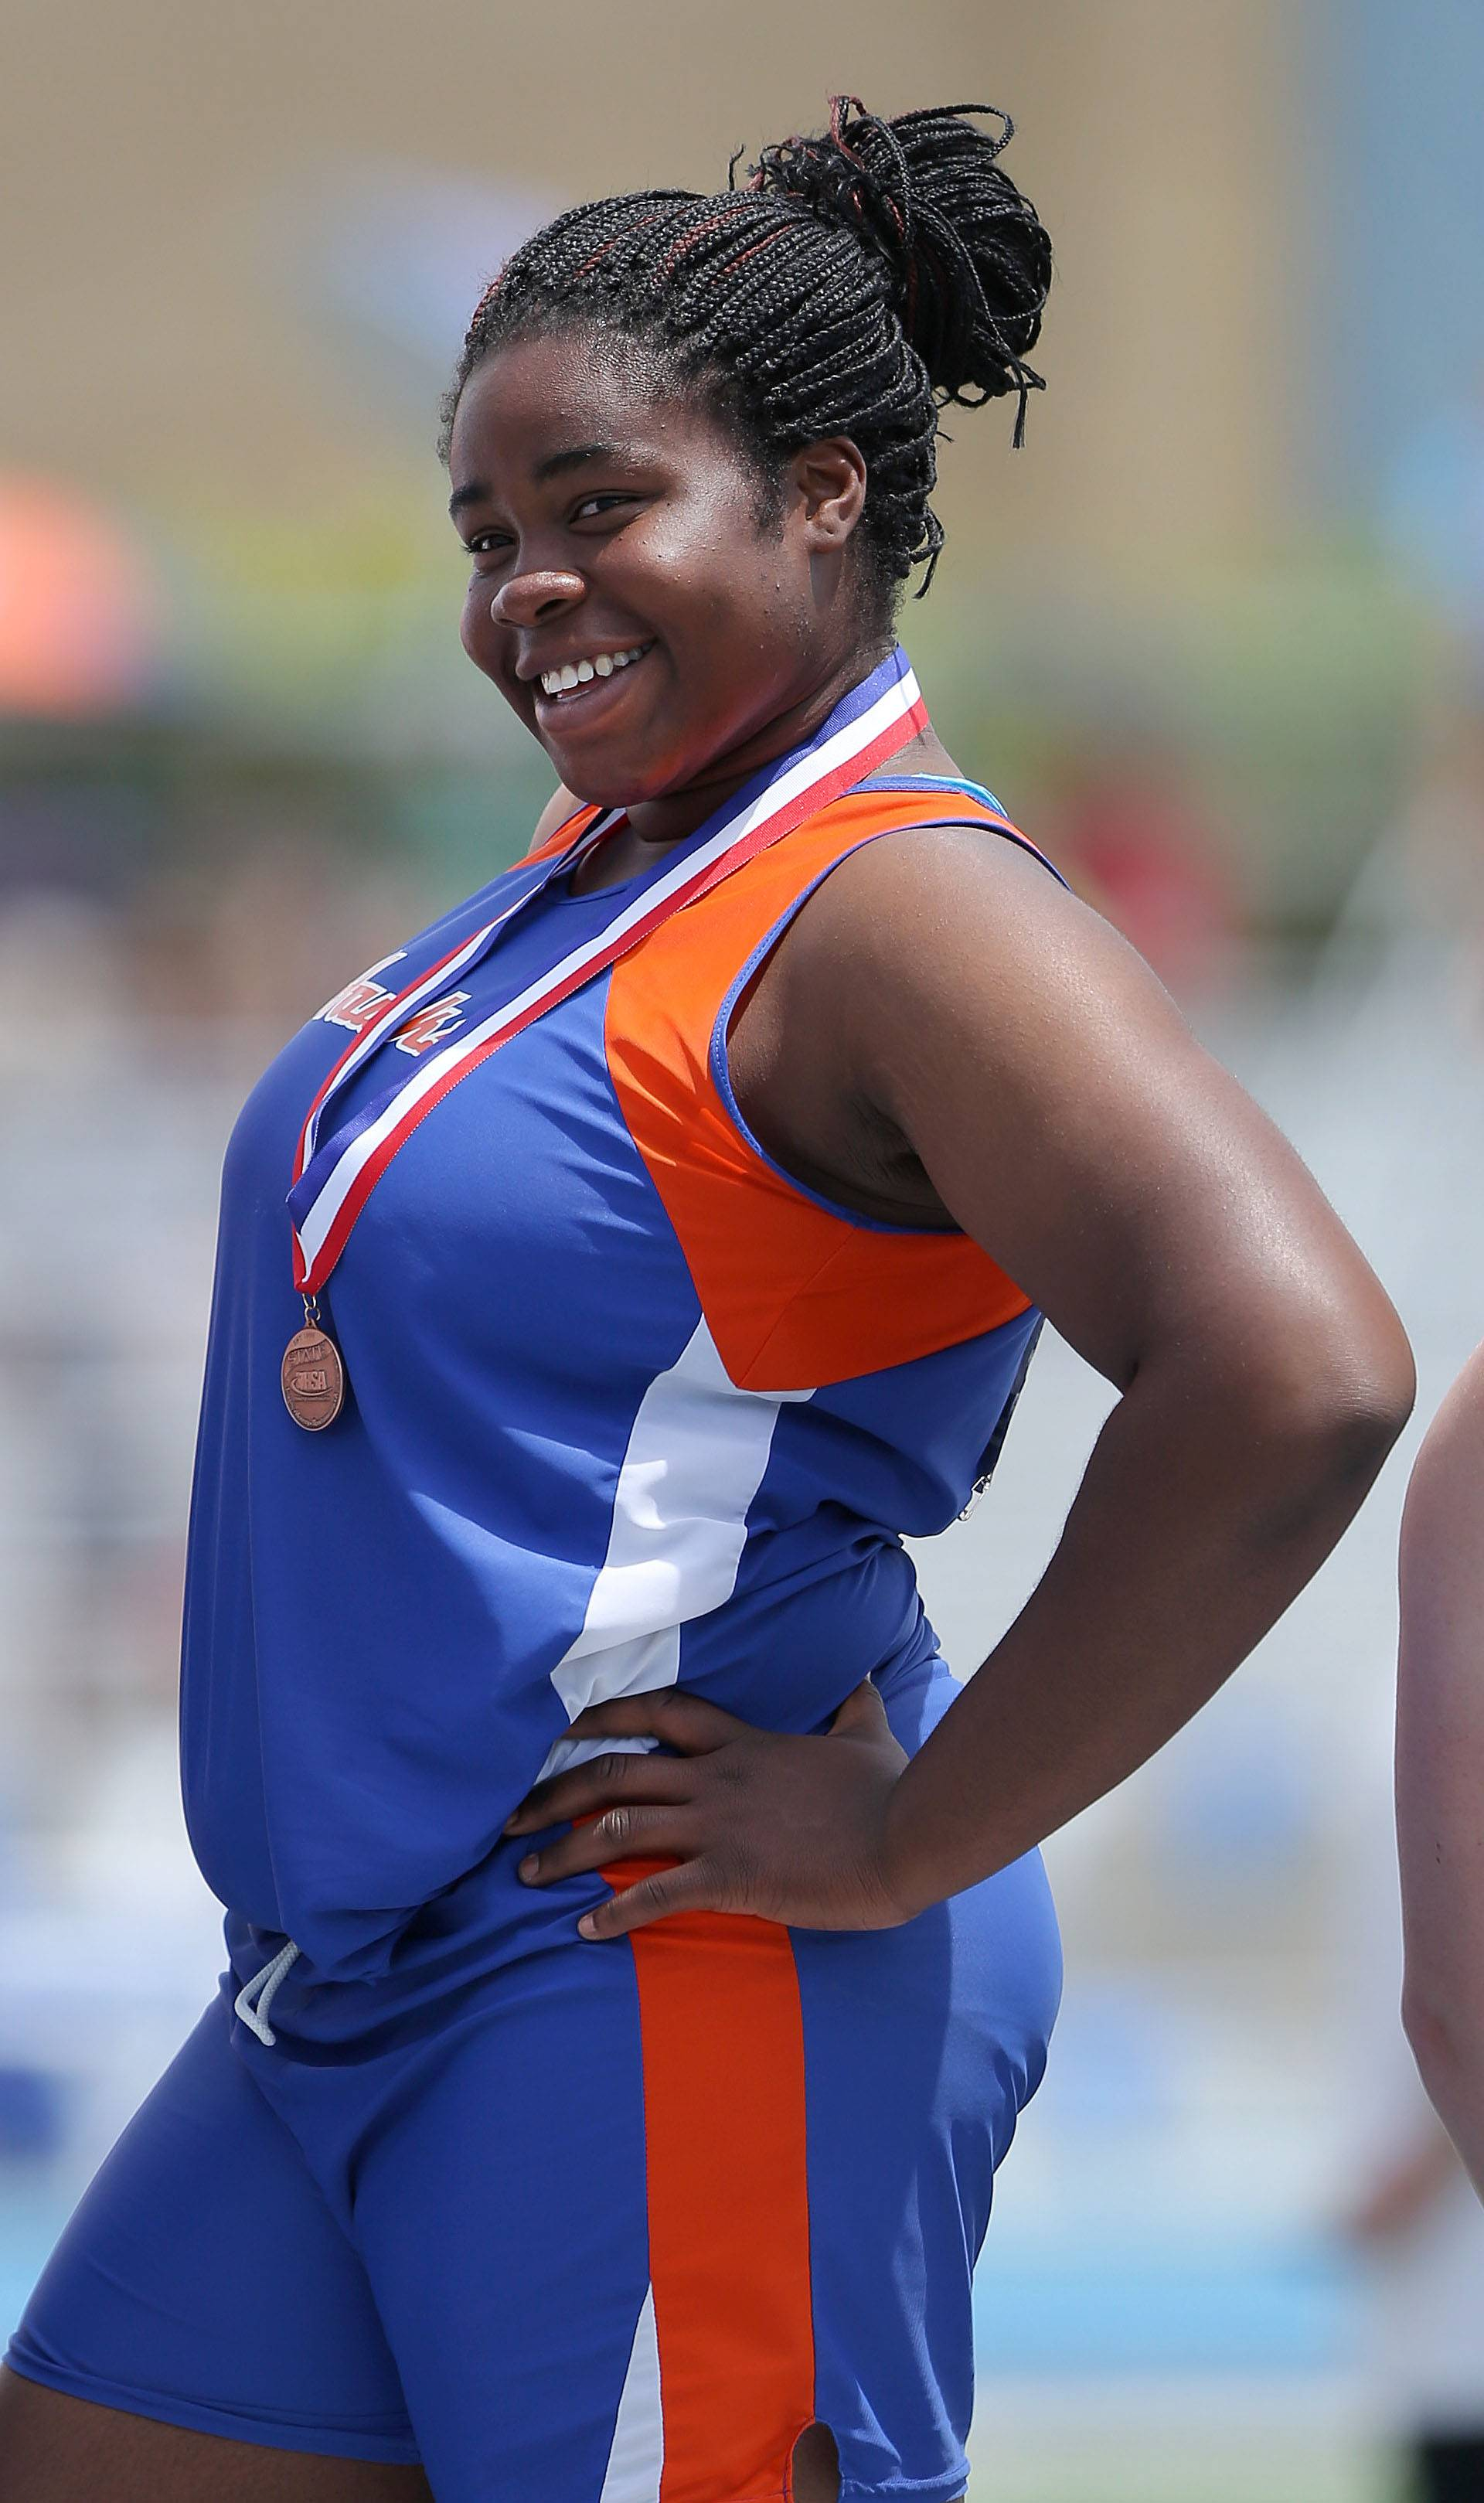 Hoffman Estates' Banke Oginni poses with her shot put medal during the girls track and field state finals at Eastern Illinois University in Charleston on Saturday.